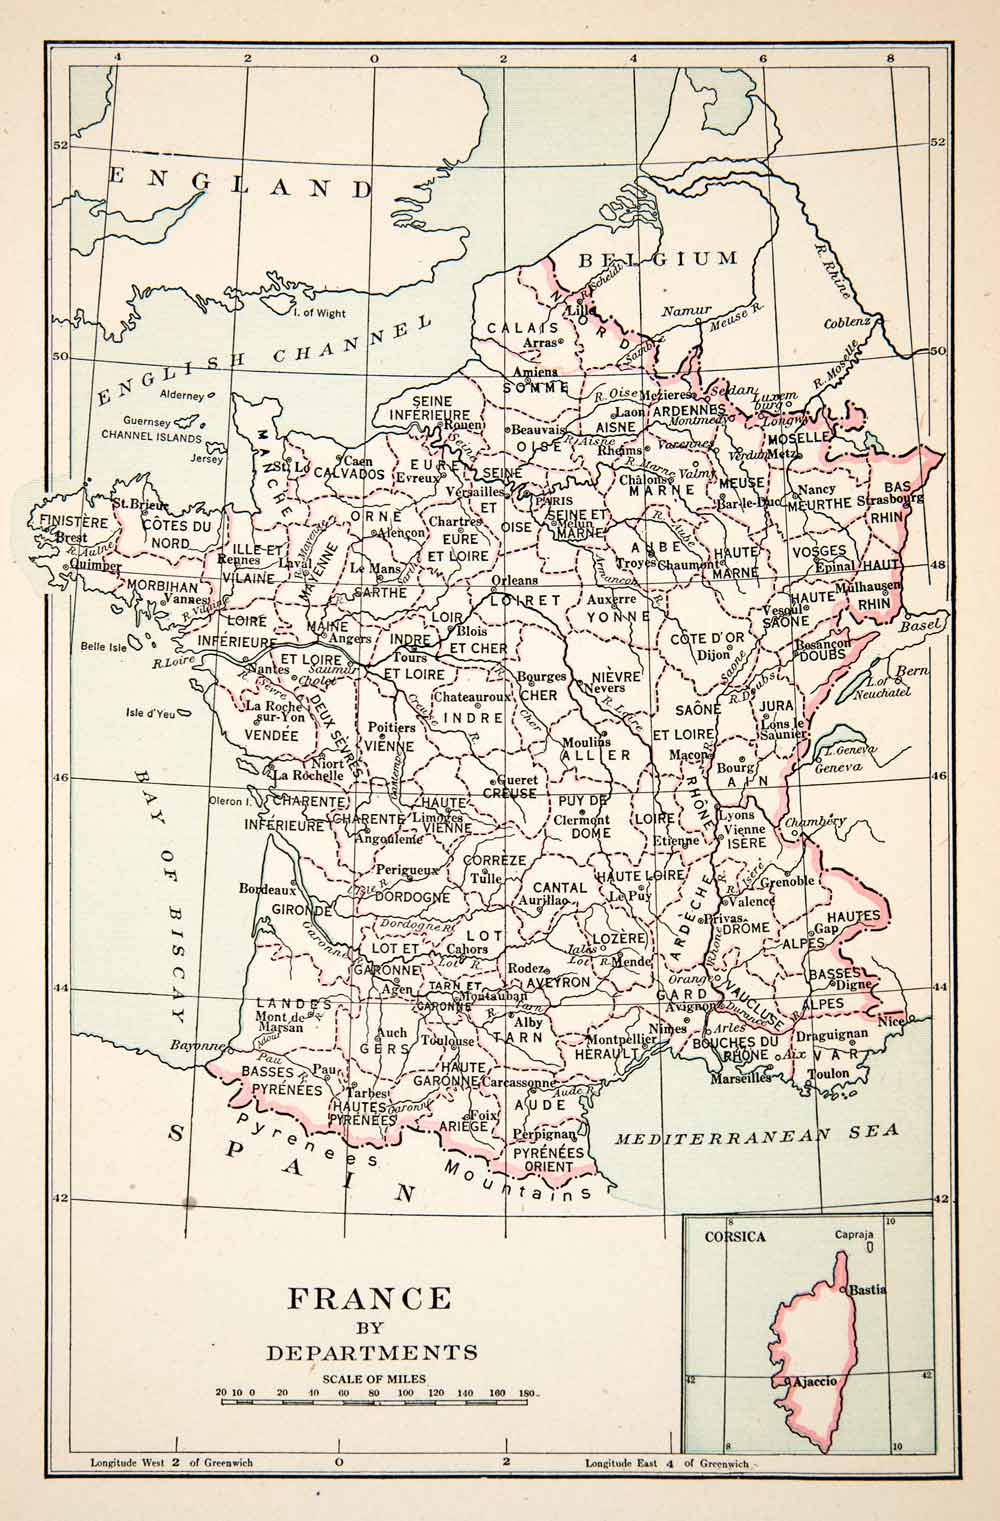 Map Of France Departments.1936 Print Map France Departments Loiret Yonne Marne Gard Landes Et Cher Xem1